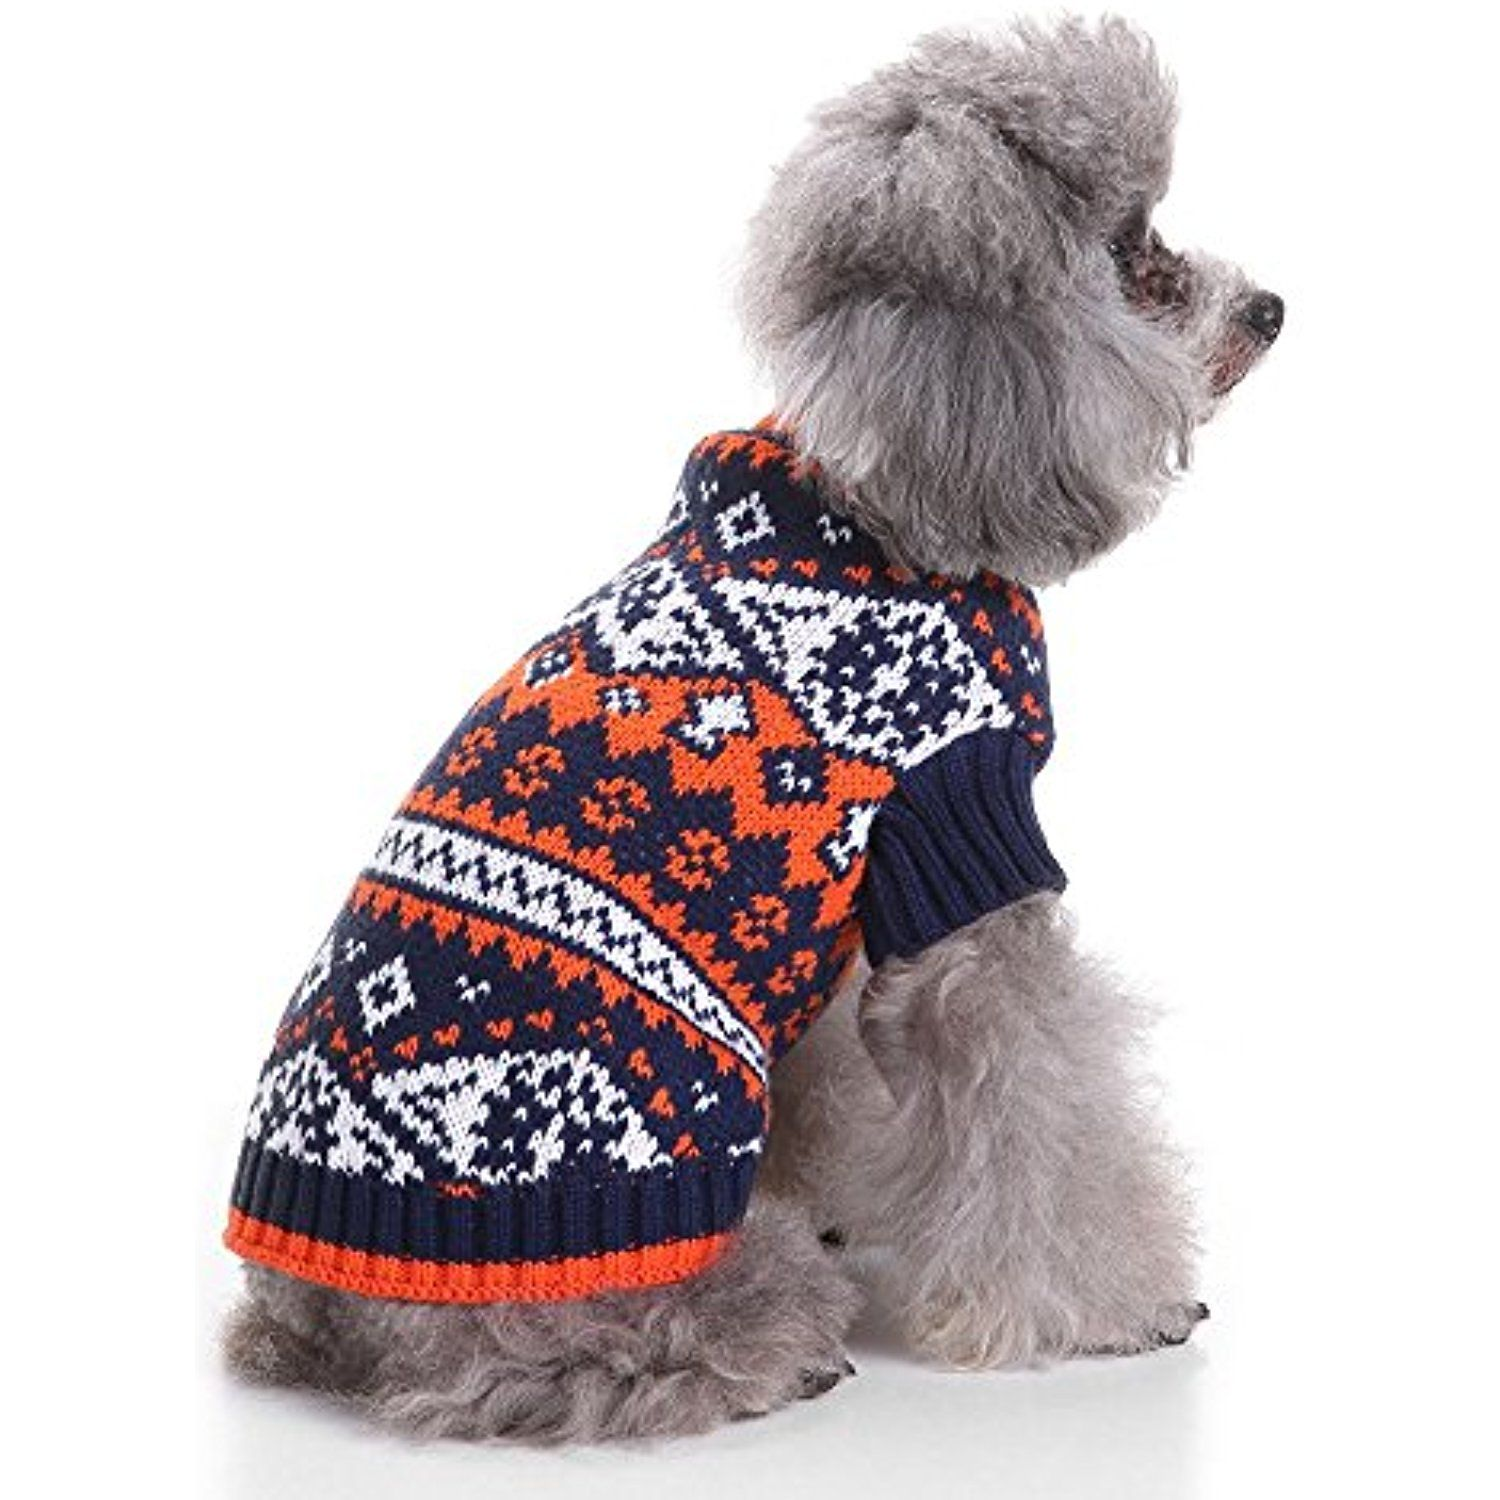 Ranphy Print Knitwear Turtleneck Dog Cat Sweater Cable Knit Pullover Puppy Pet Outerwear Holiday Warm Clothes B Small Dog Sweaters Pet Sweaters Dog Clothes Diy [ 1500 x 1500 Pixel ]